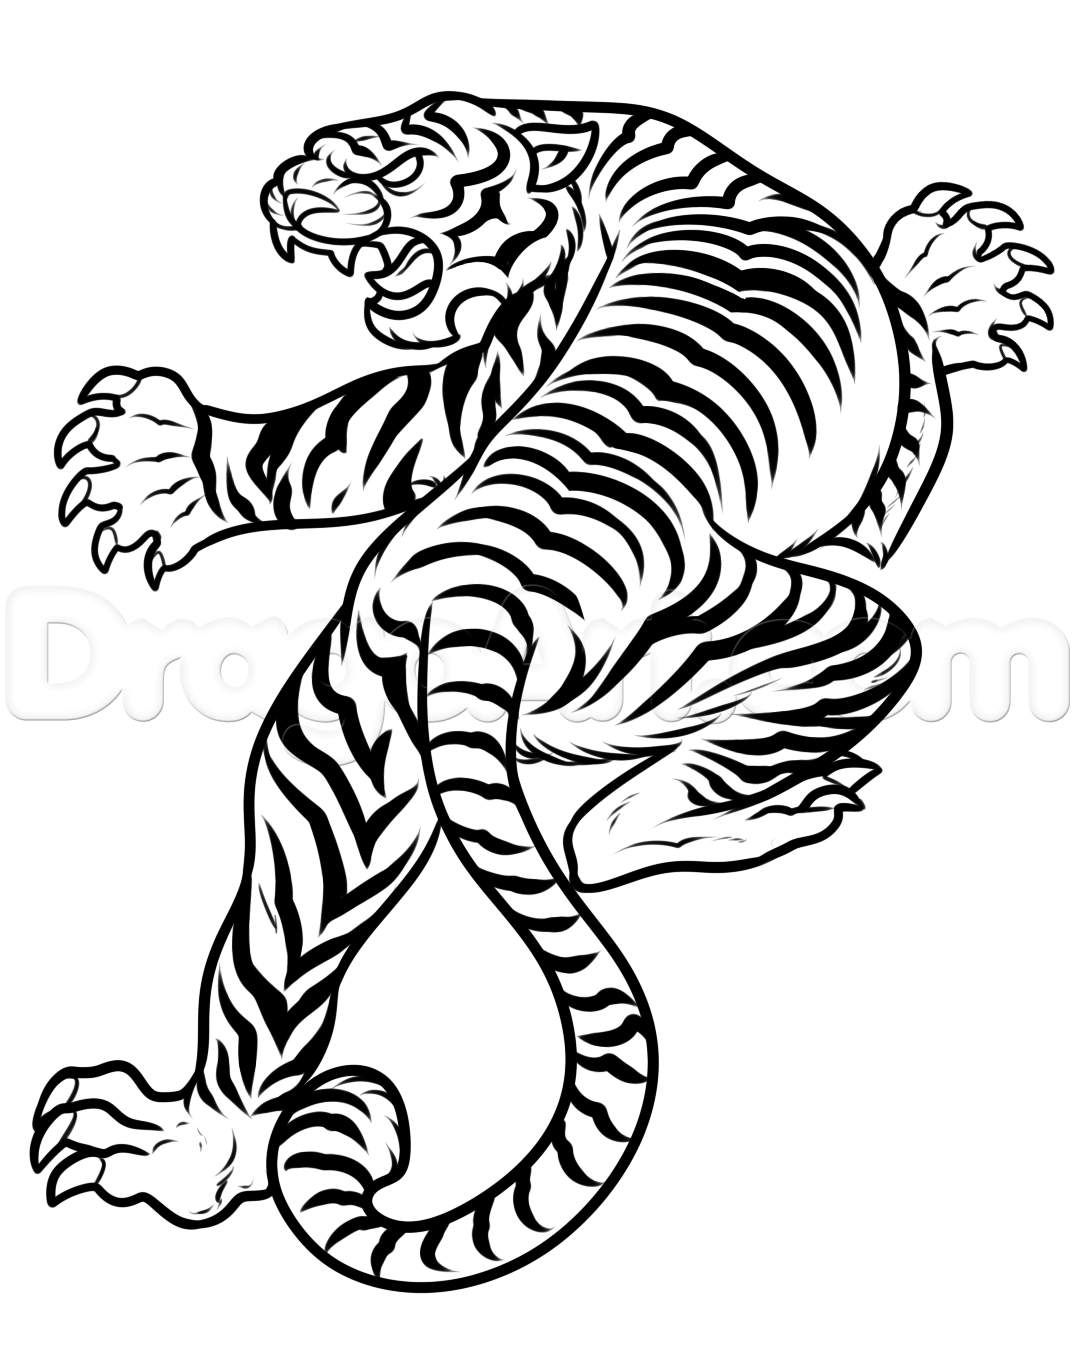 1075x1351 How To Draw A Japanese Tiger Tattoo, Step